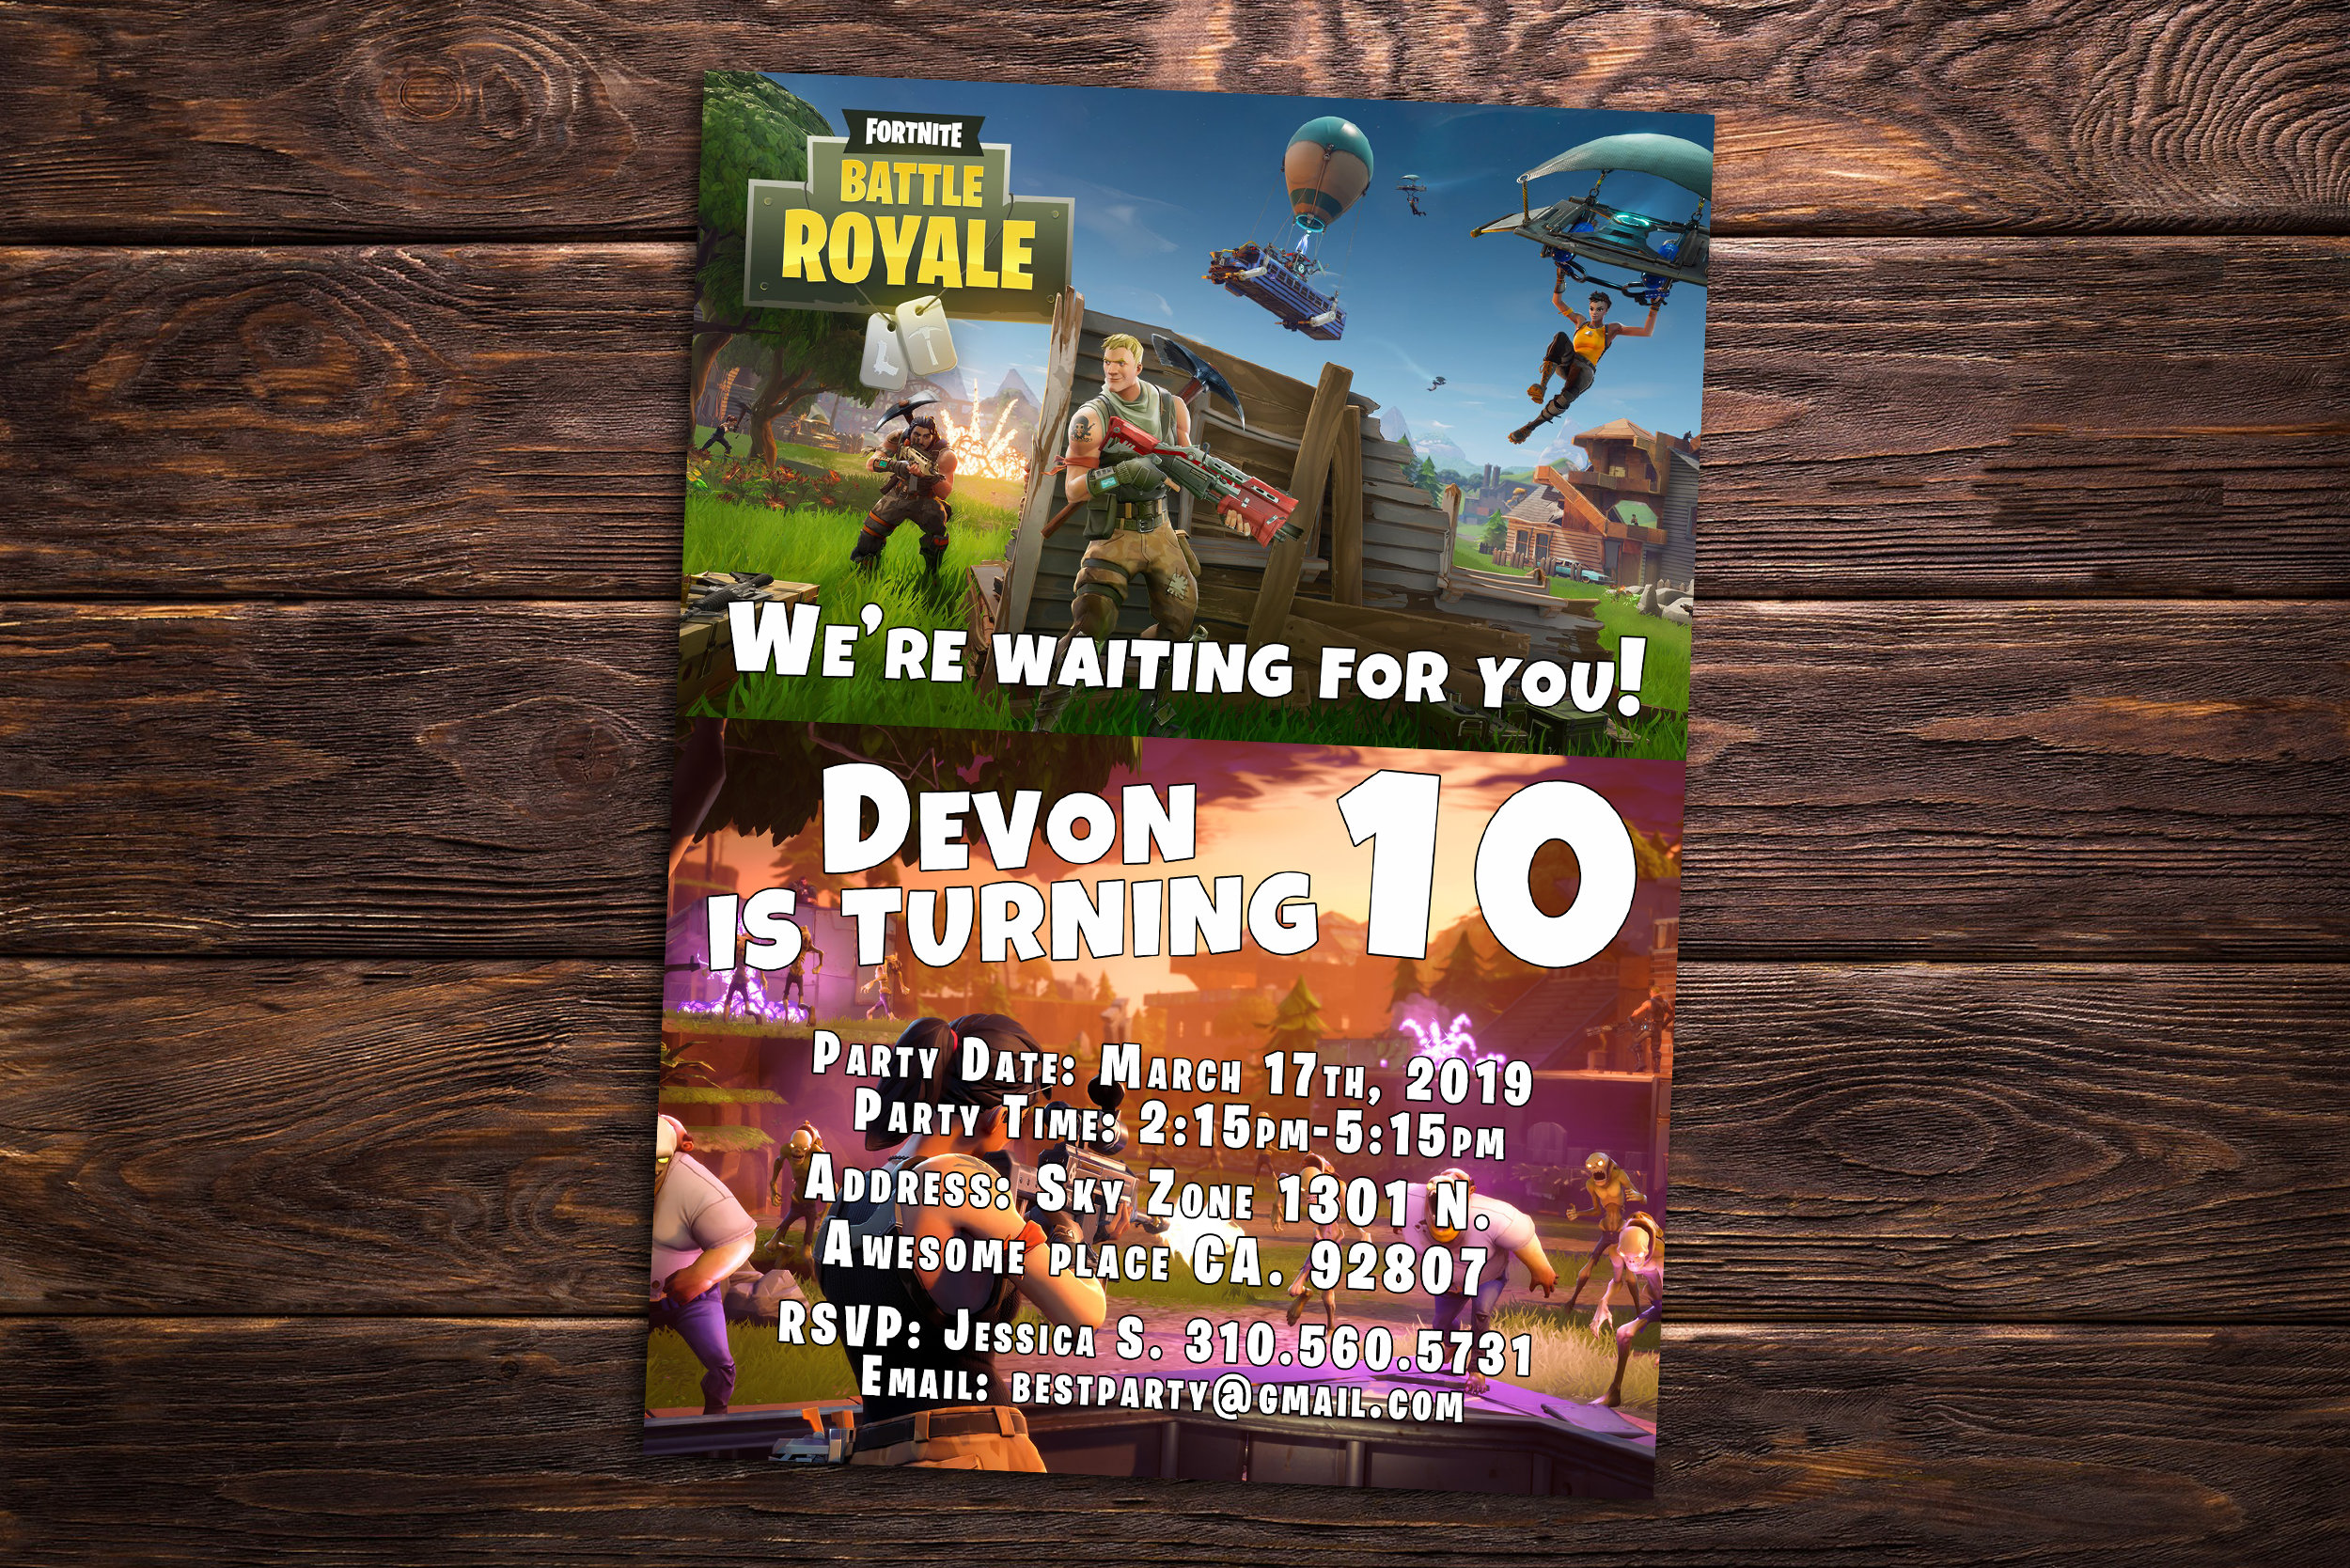 Fortnite Battle Royale Birthday Party Invitation - Personalized Fortnite  Gift Card - Birthday Printables and Fortnite Party Suuplies